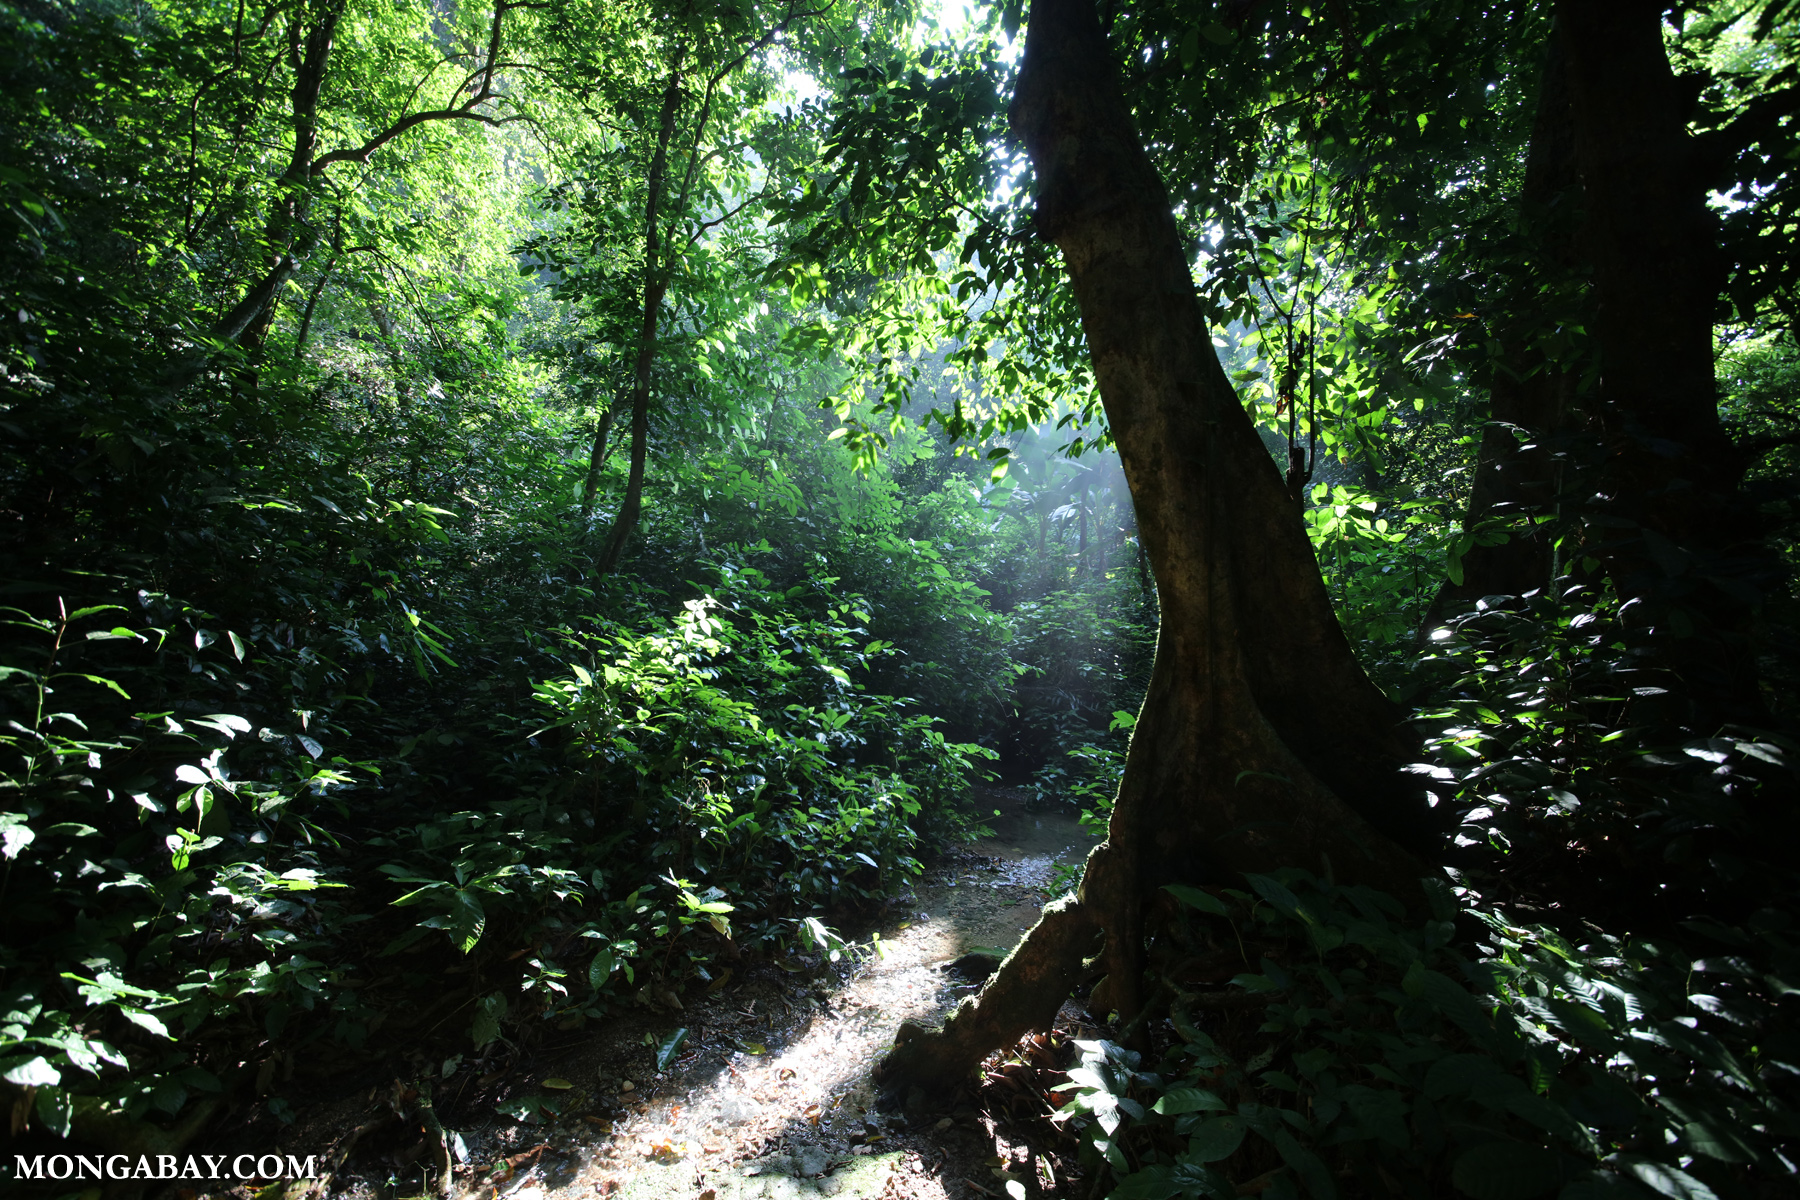 Lowland rainforest in Southeast Asia. Photo by Rhett A. Butler.